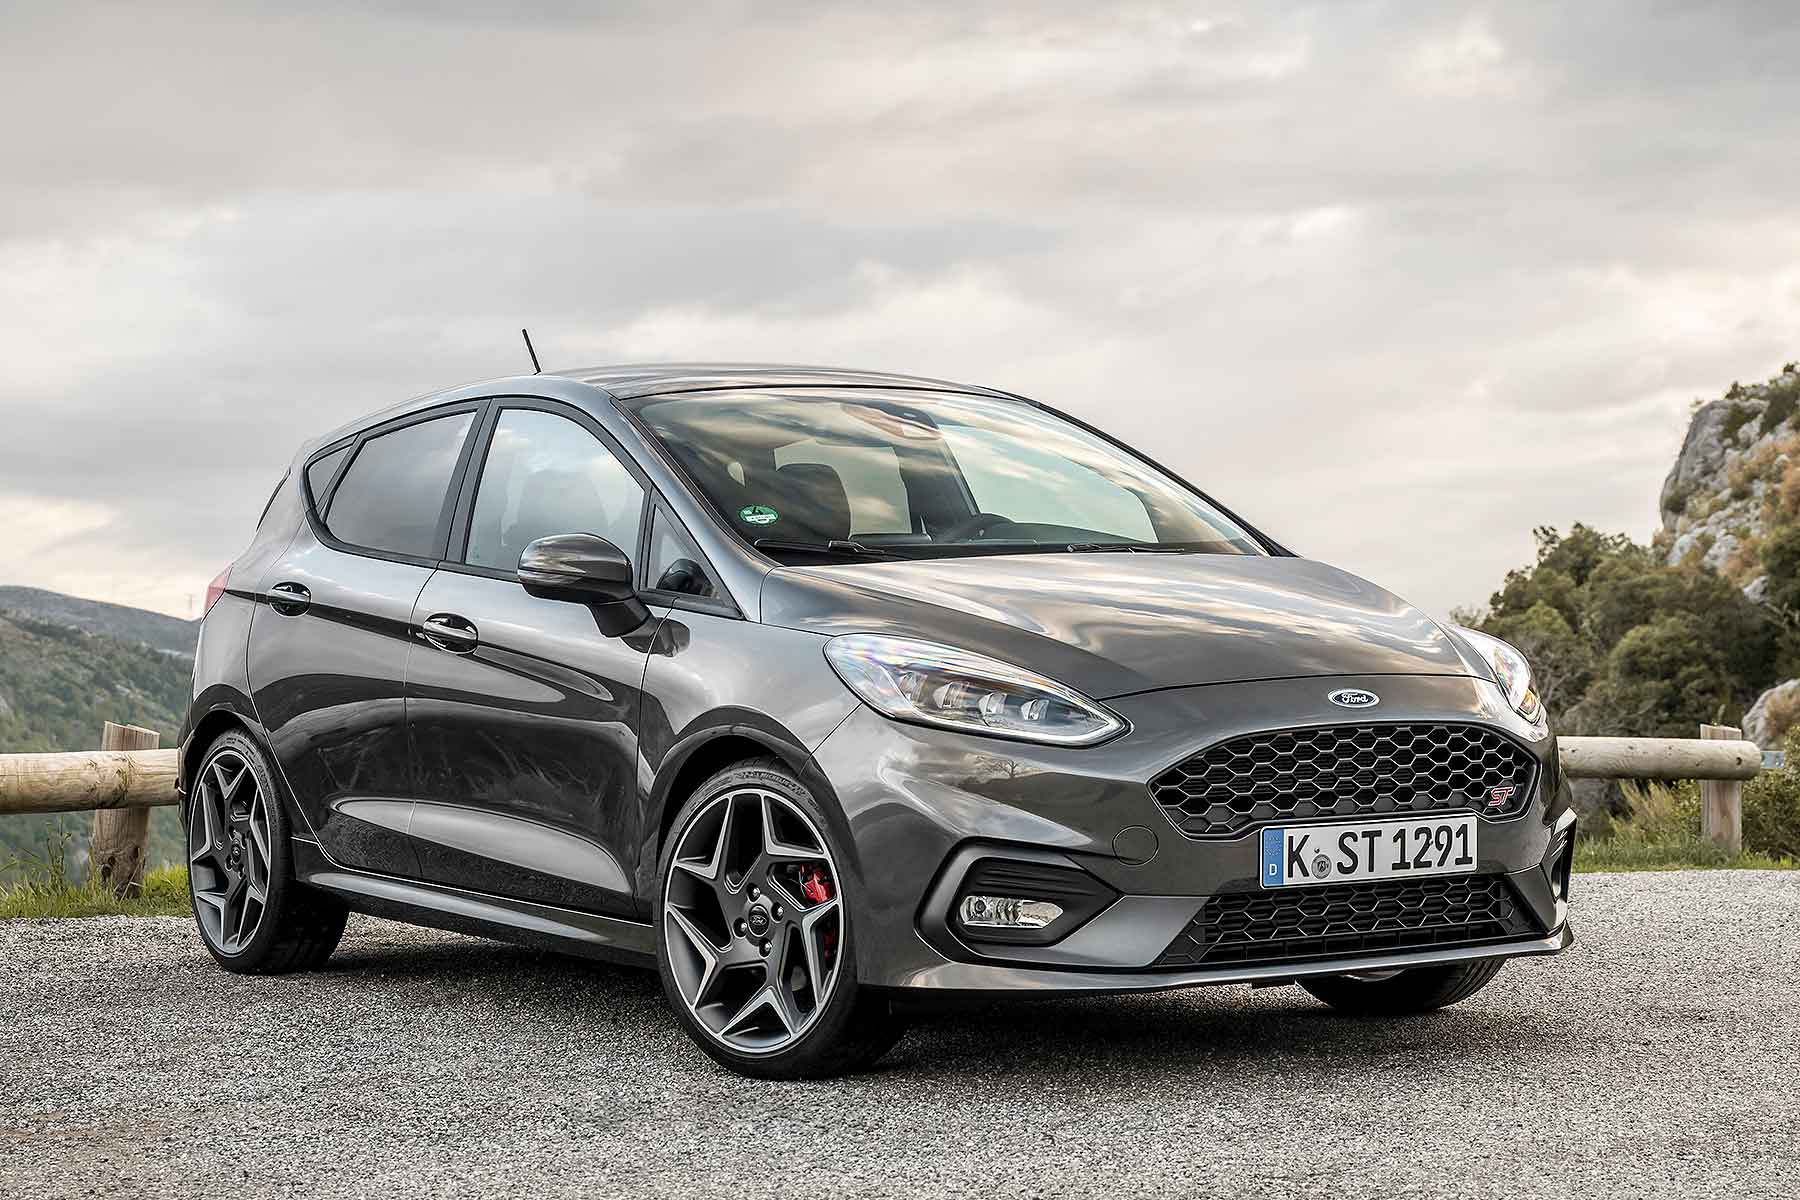 2018 ford fiesta st priced from just £18995